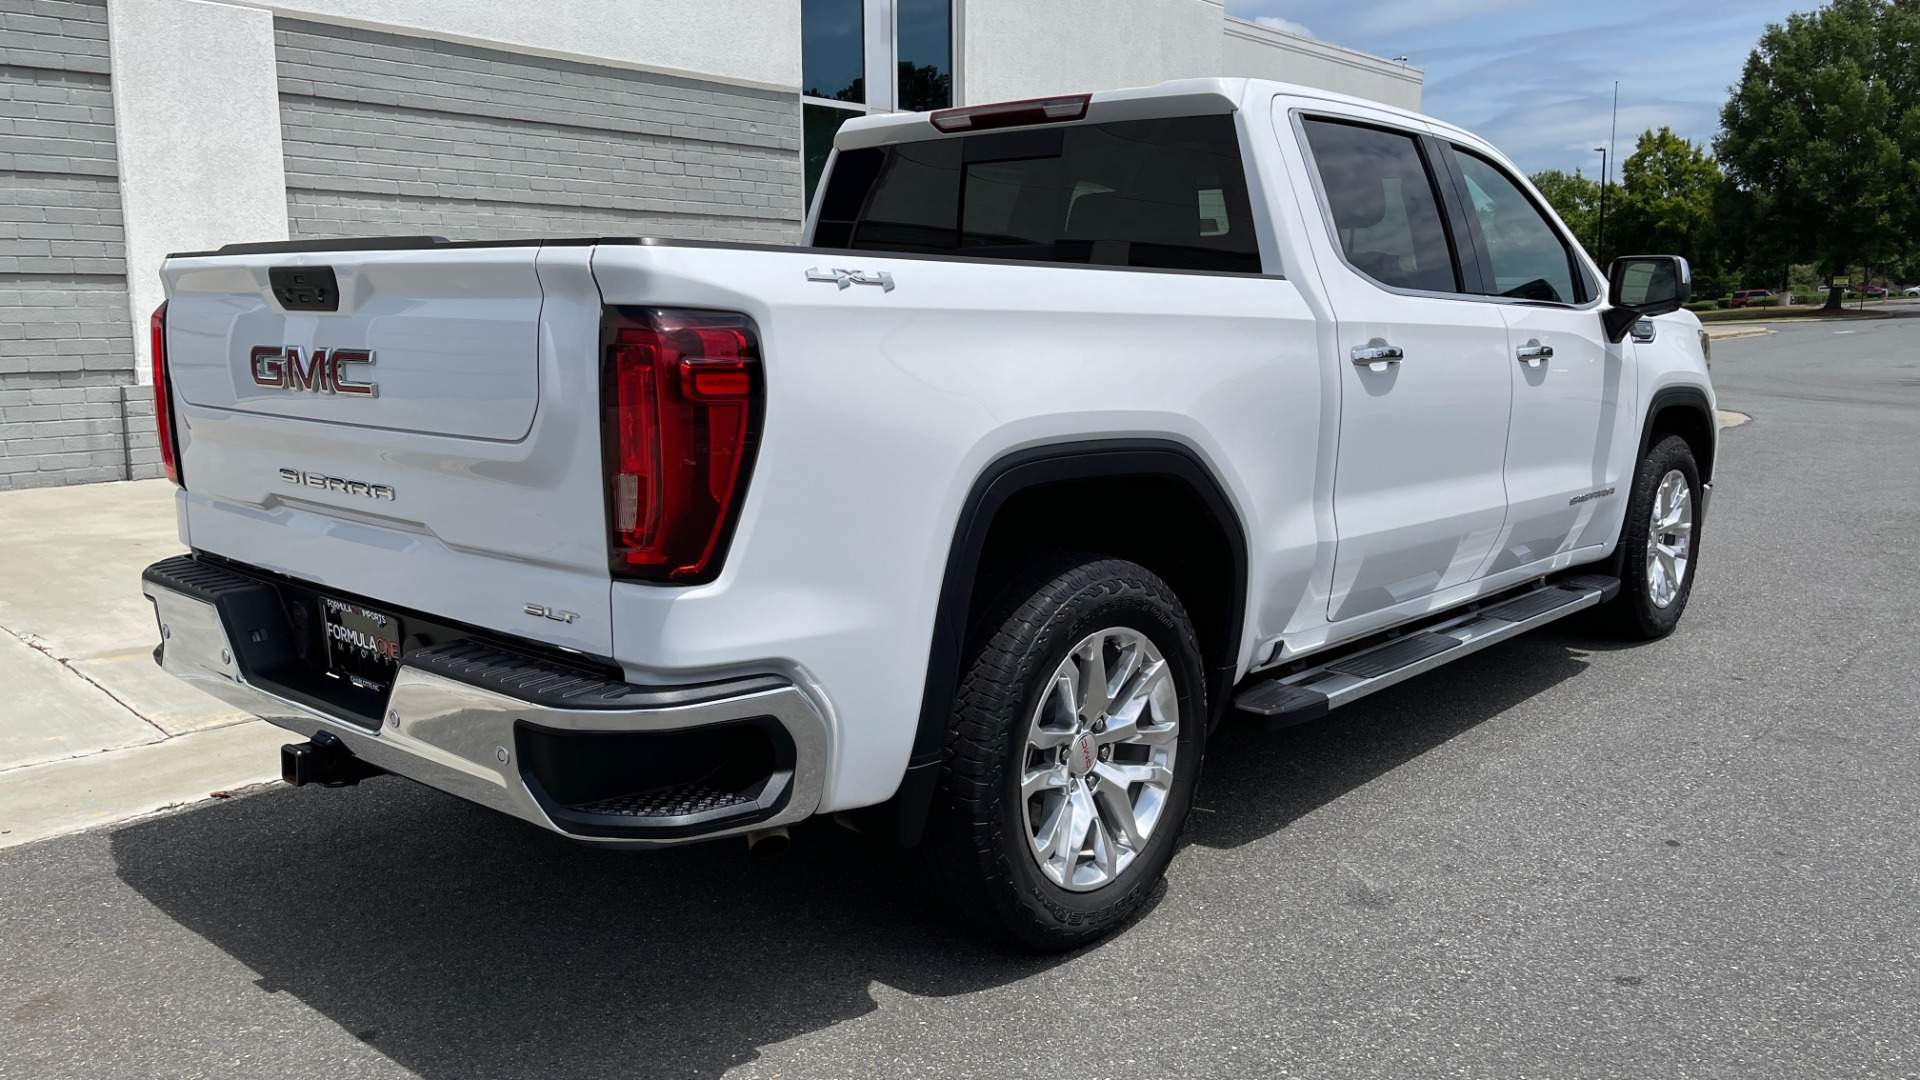 Used 2019 GMC SIERRA 1500 SLT 4X4 CREWCAB / 5.3L V8 / 8-SPD AUTO / NAV / BOSE / REARVIEW for sale $49,999 at Formula Imports in Charlotte NC 28227 2